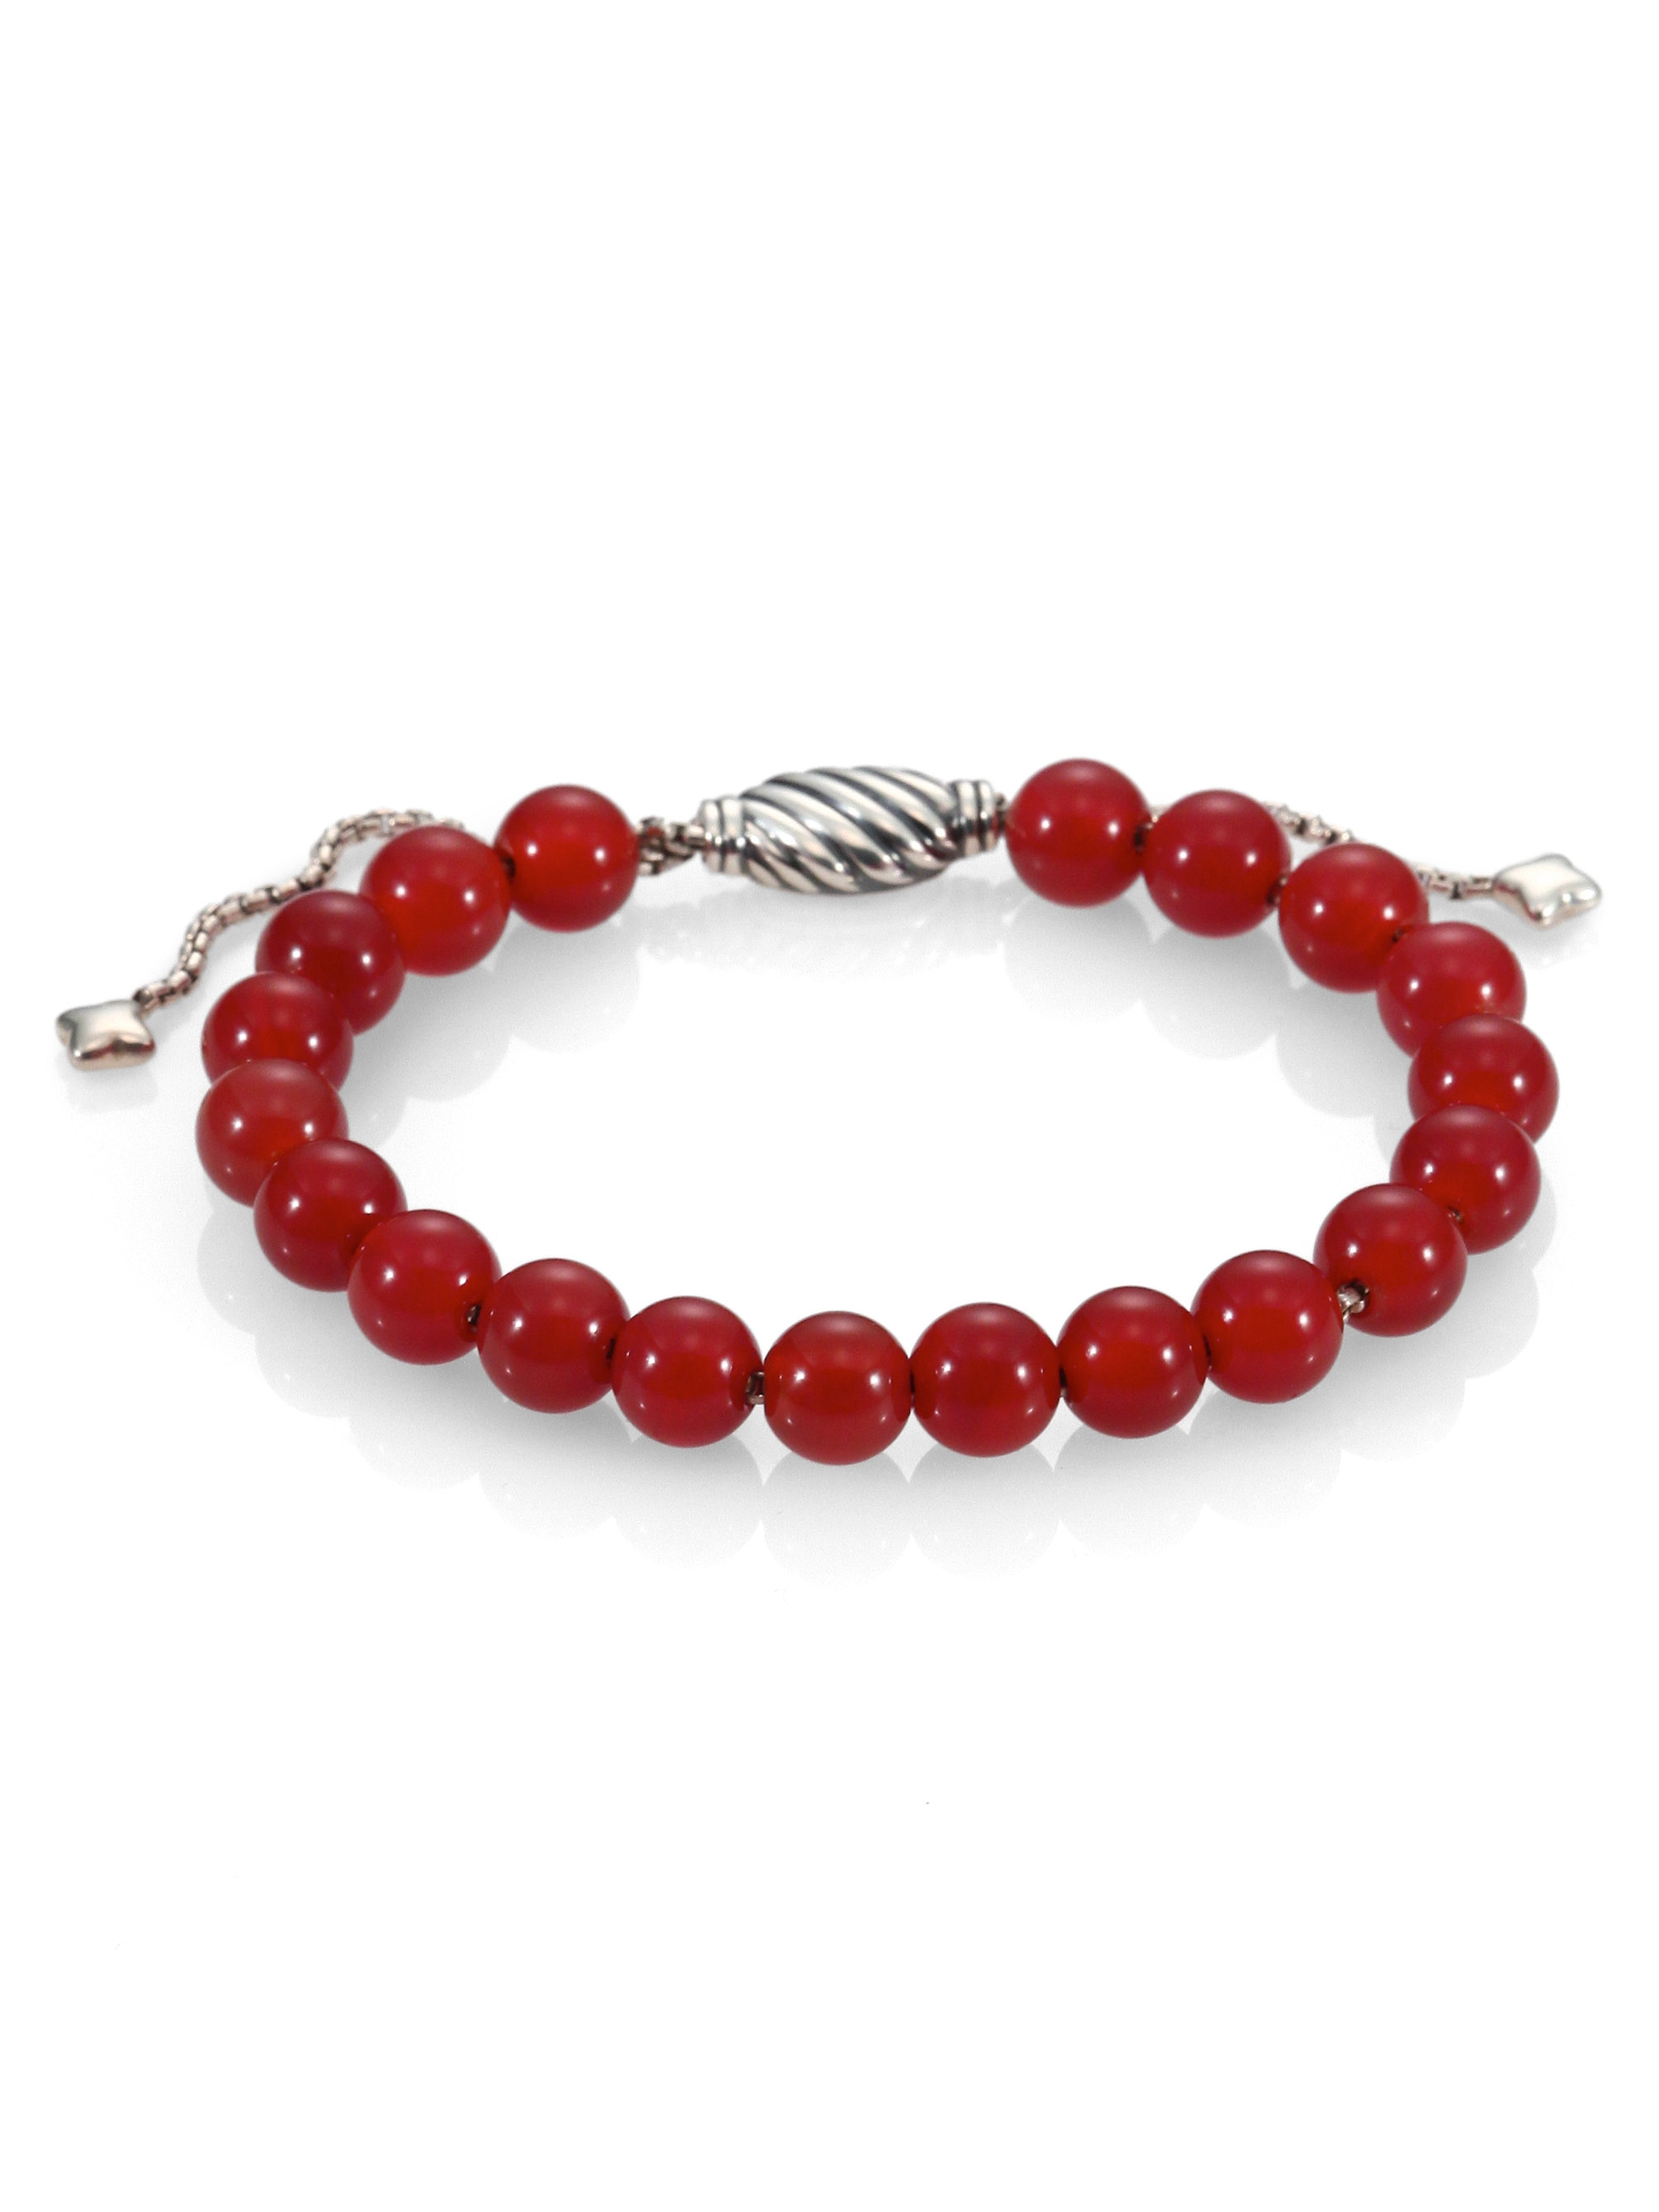 david yurman carnelian sterling silver beaded bracelet in